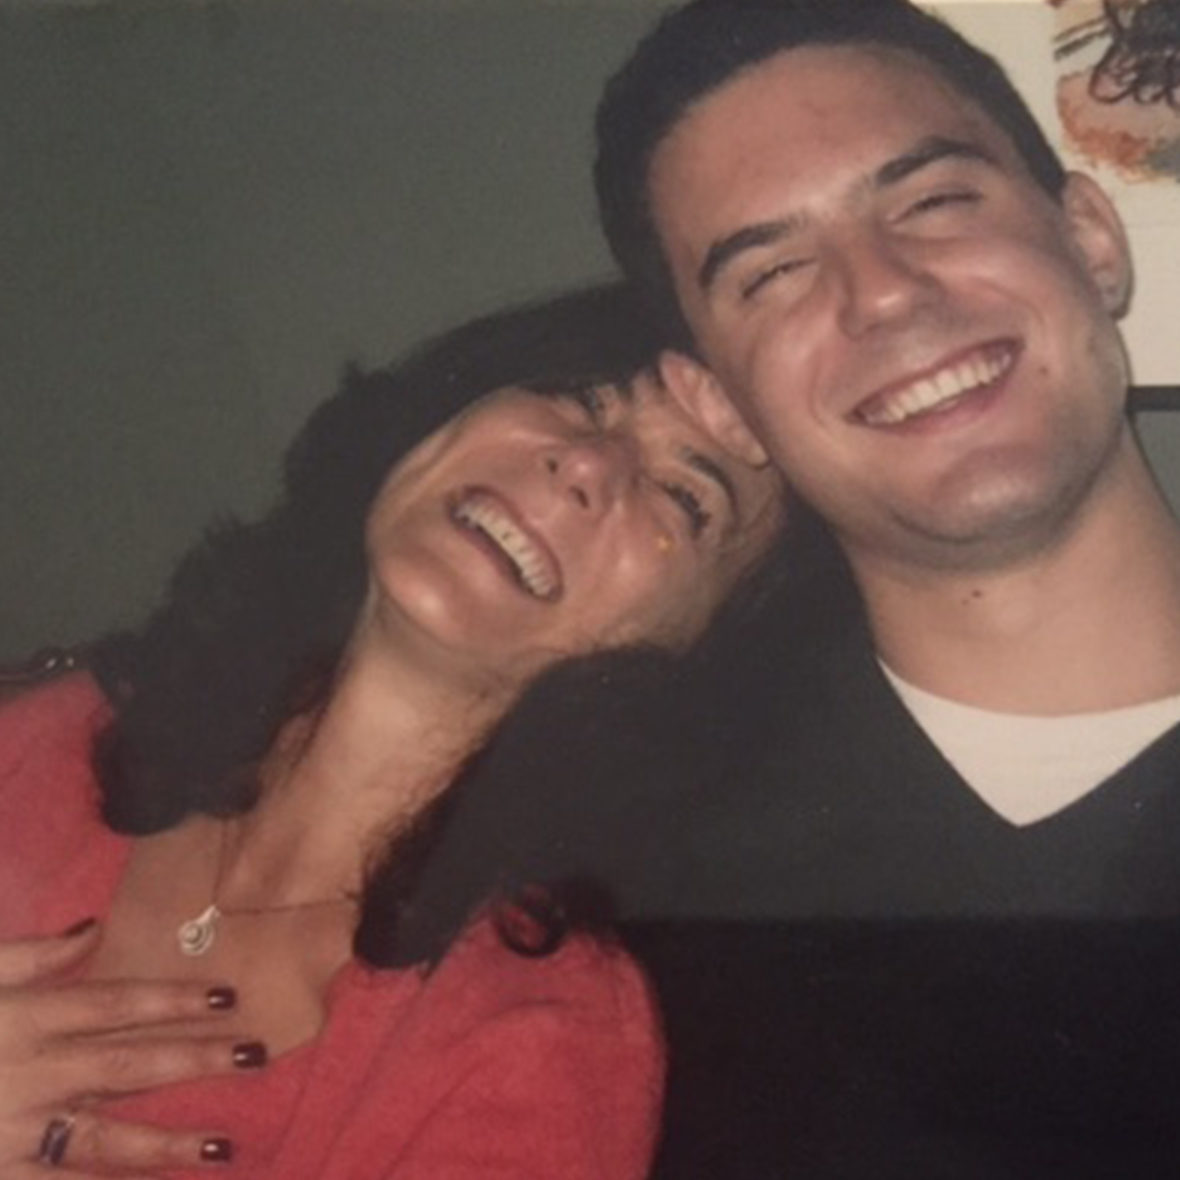 Woman with head on man's shoulder and both laughing